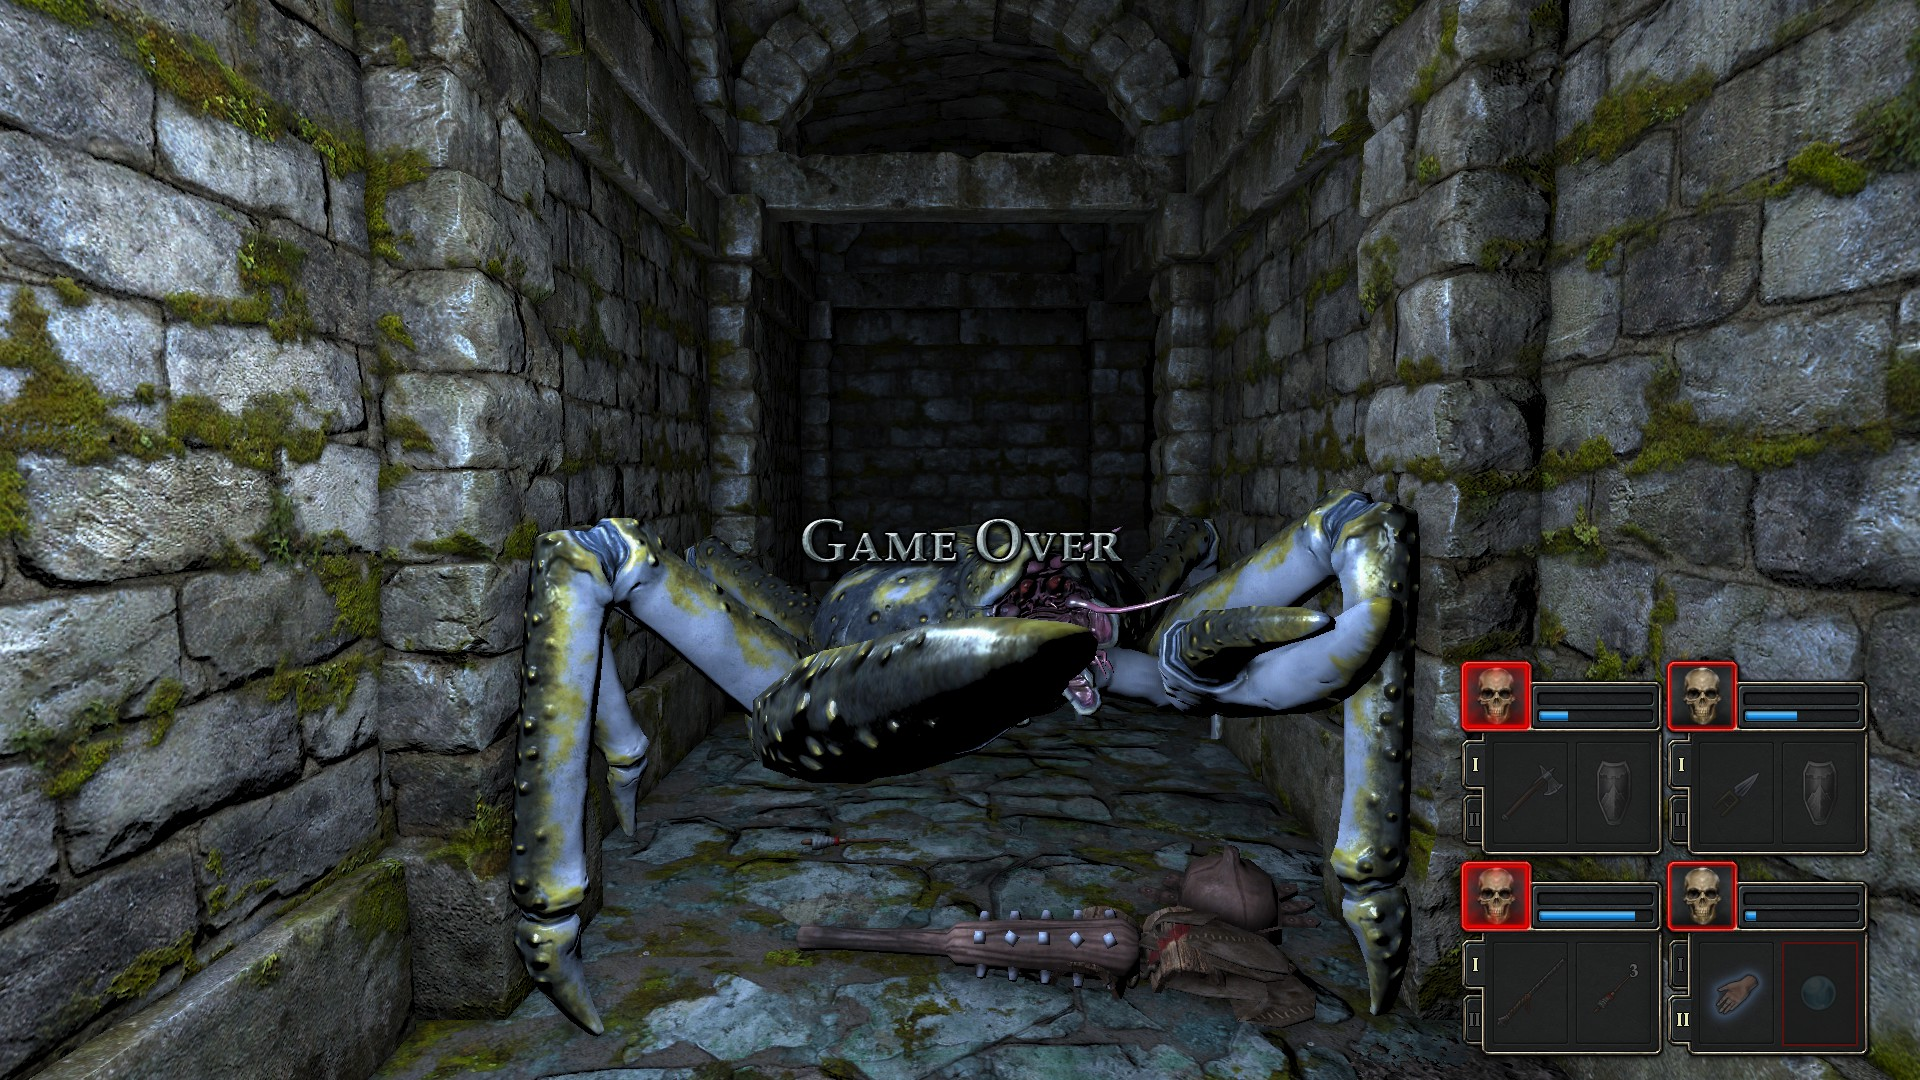 Artistry in Games 2014-10-09_00001 Legend of Grimrock 2 Review Reviews  RPG review retro PC old-school legend of grimrock indie grimrock dungeon crawling Dungeon challenging almost human